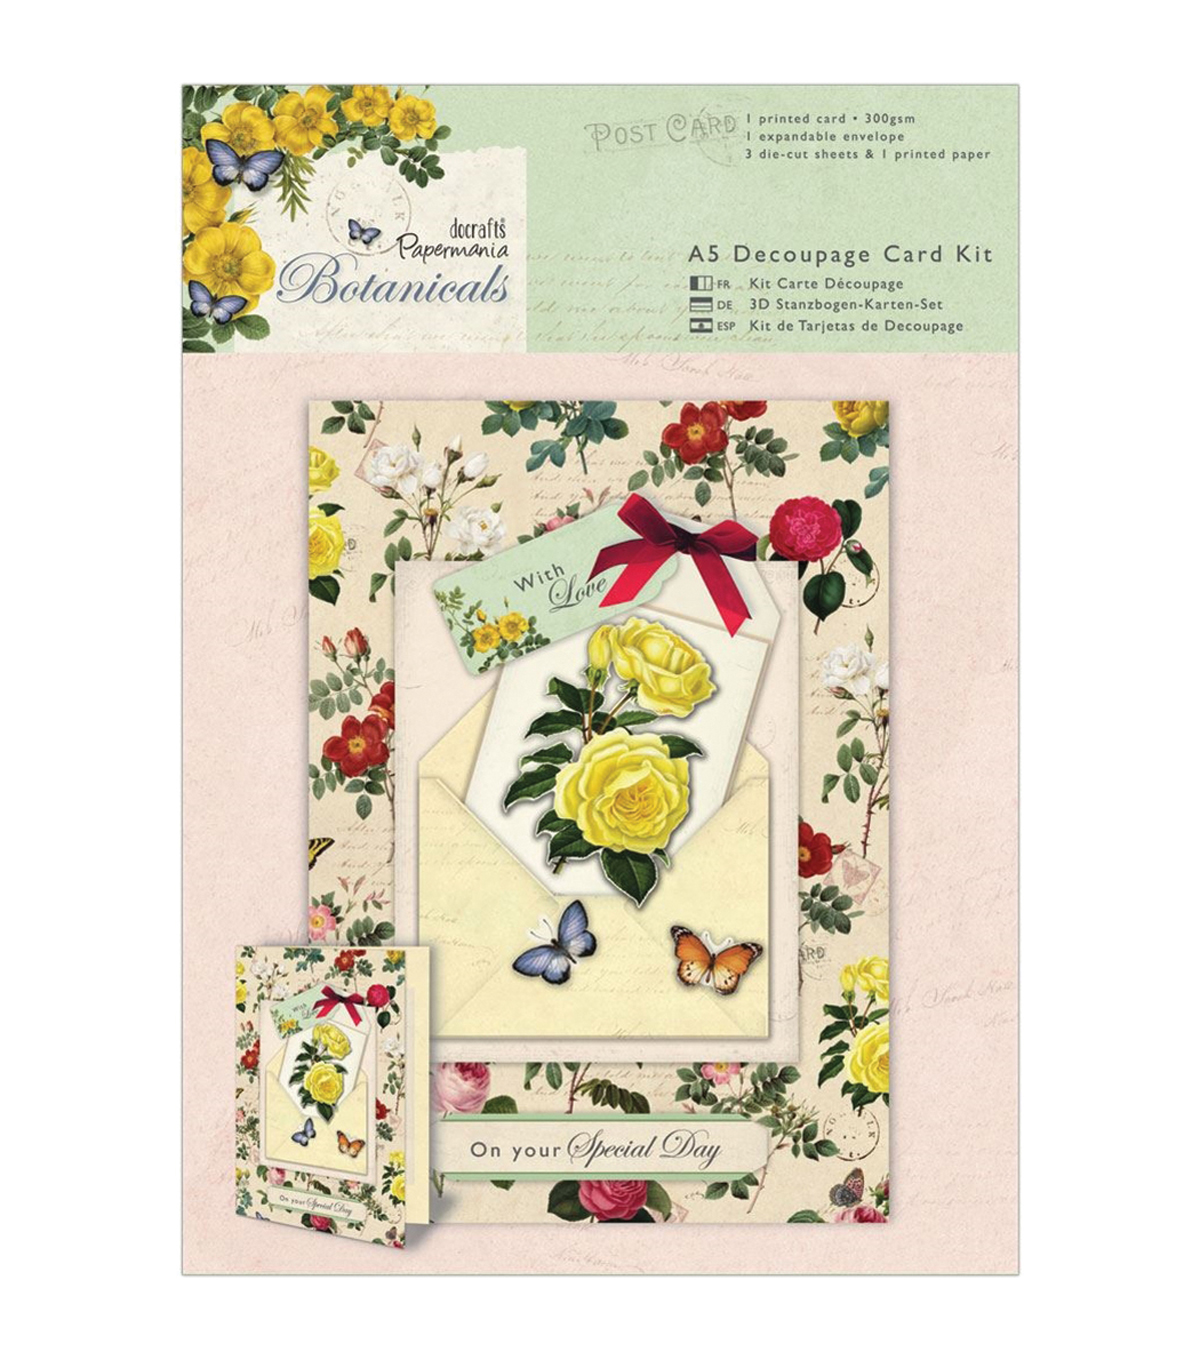 Papermania Botanicals A5 Decoupage Card Kit-